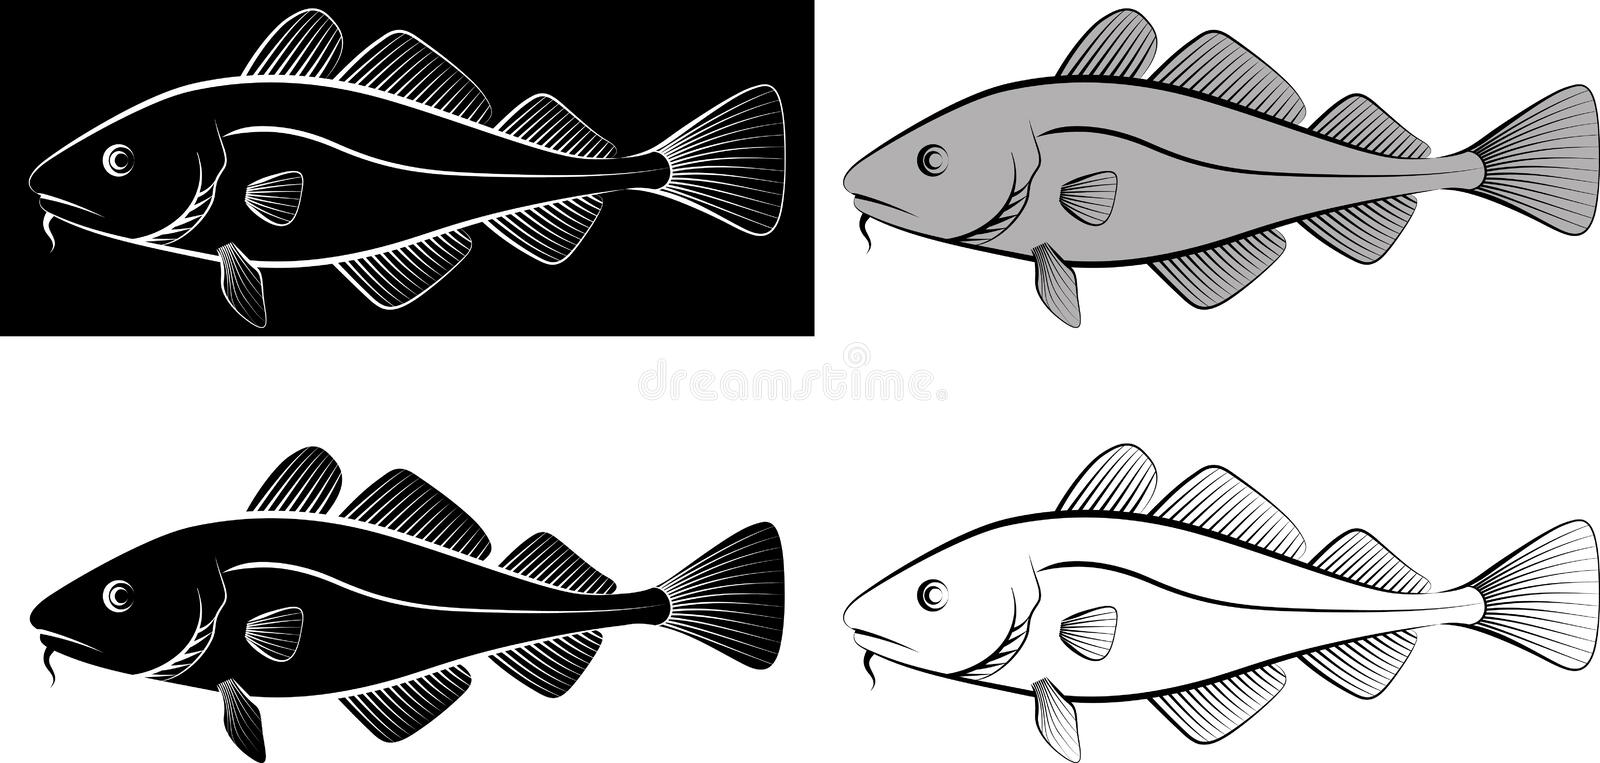 Cod. Isolated cod fish - clip art illustration and line art vector illustration